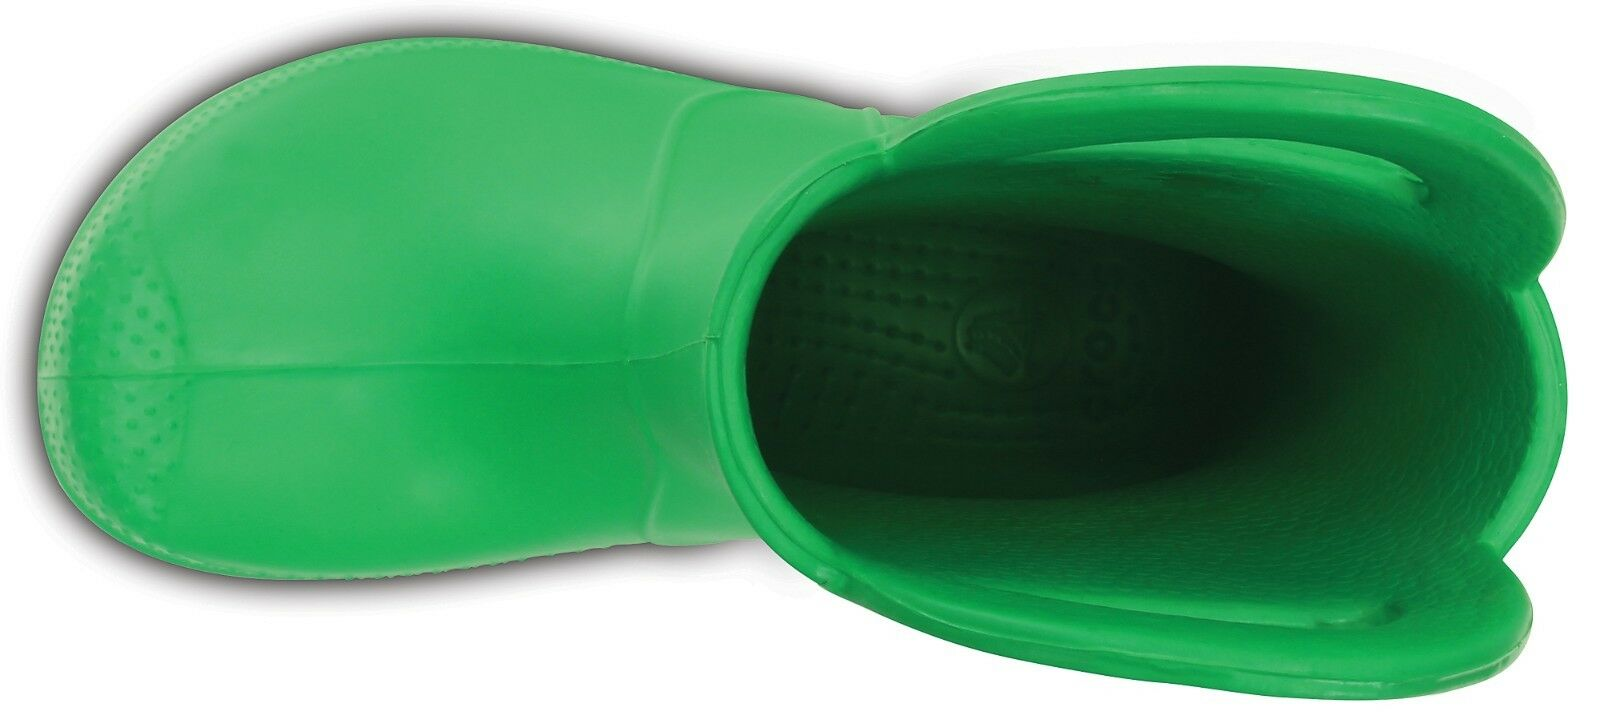 acdb7965c03567 Crocs Kids Handle It Rain Roomy Fit BOOTS Wellies in Wide Range of Colours 12803  Grass Green 12803 3e8 Child 12 887350426052